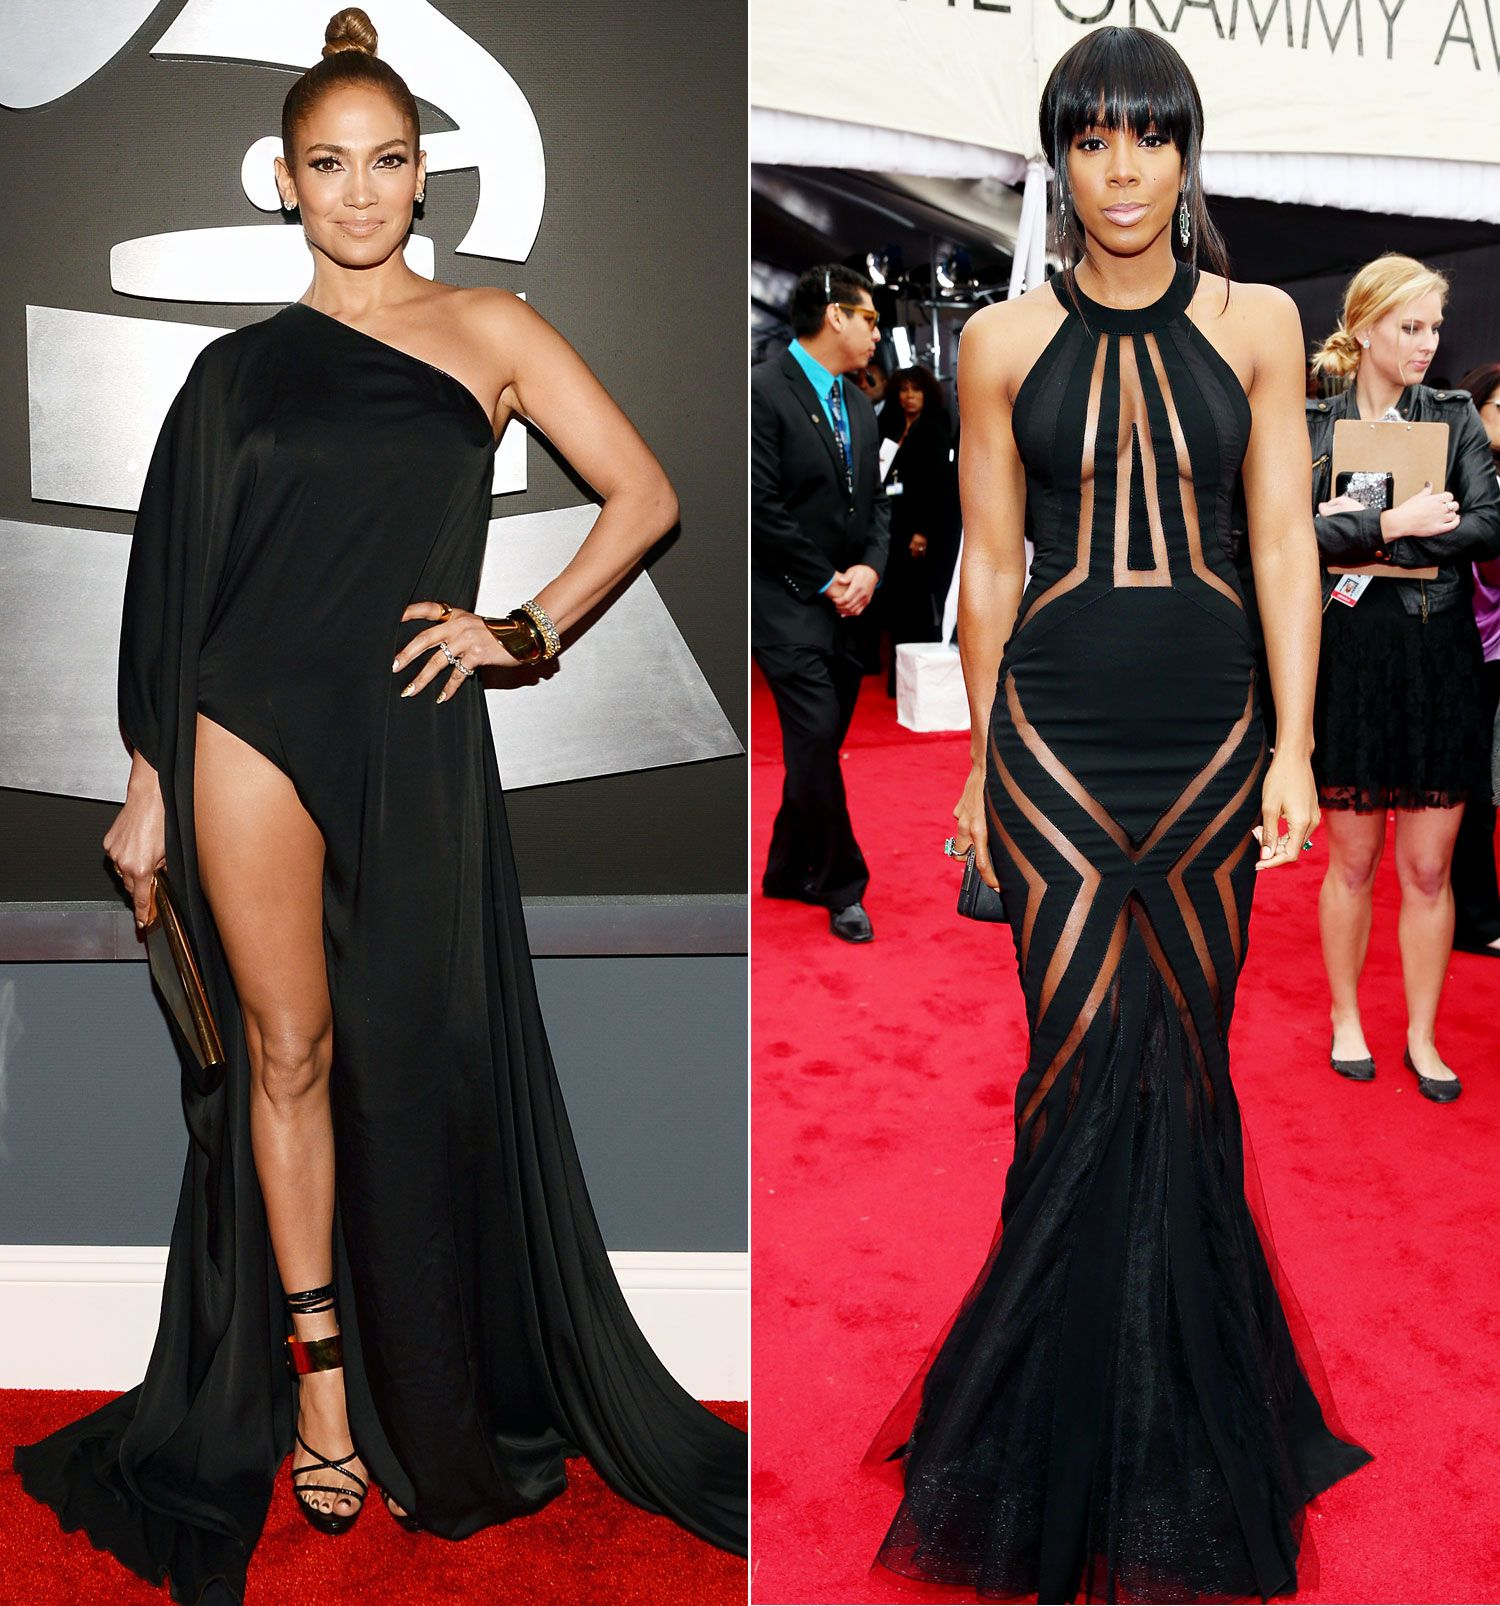 Grammy Awards 2013 Biggest Dress Code Violators: Jennifer Lopez ...